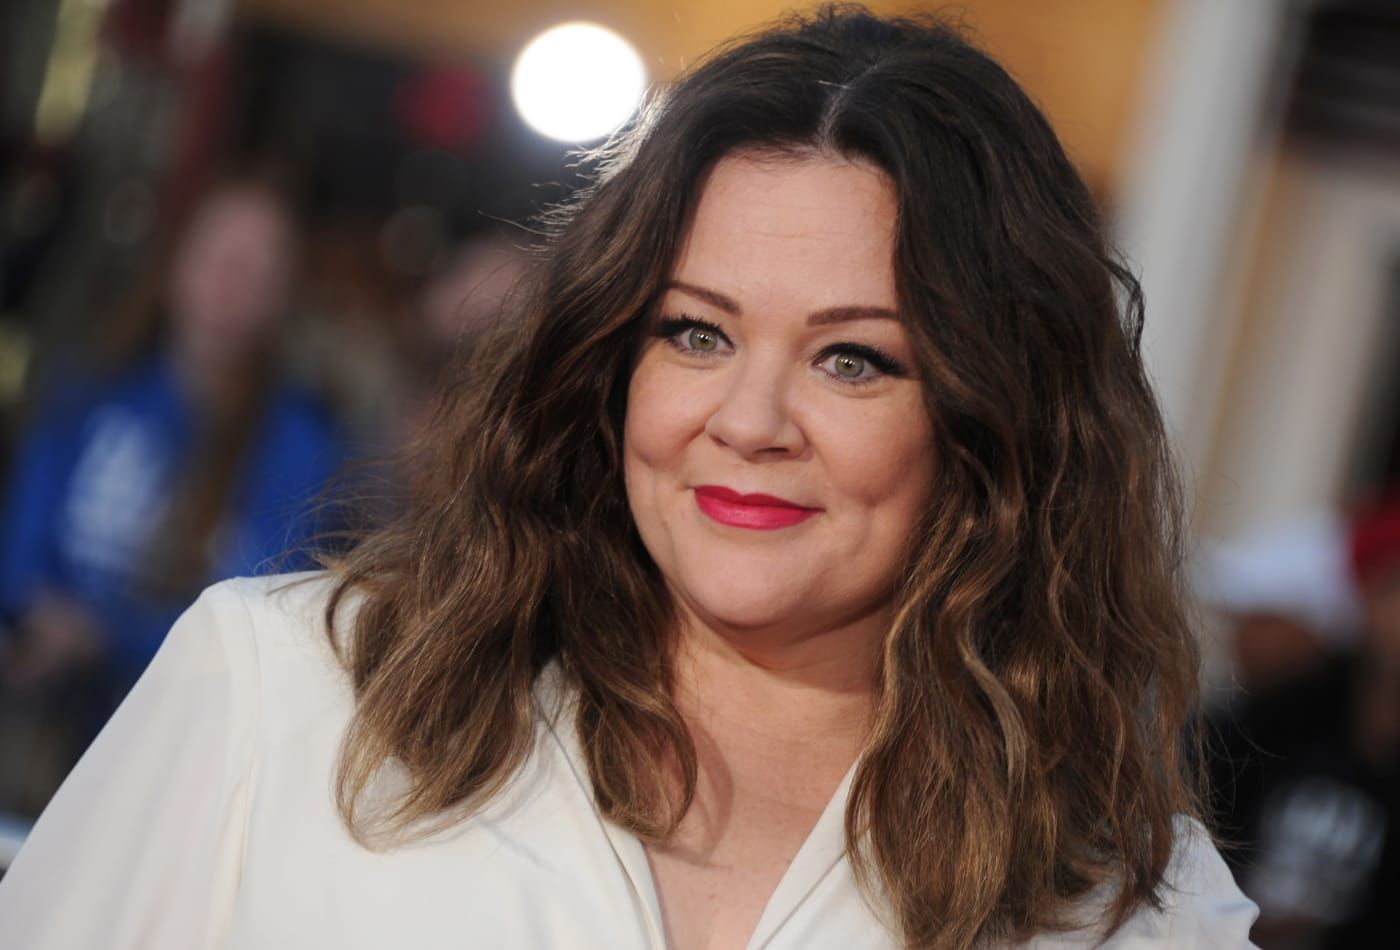 Melissa Mccarthy Wakes Up Every Morning At 4 30 Here S The First Thing She Does Melissa Mccarthy Height And Weight Melissa